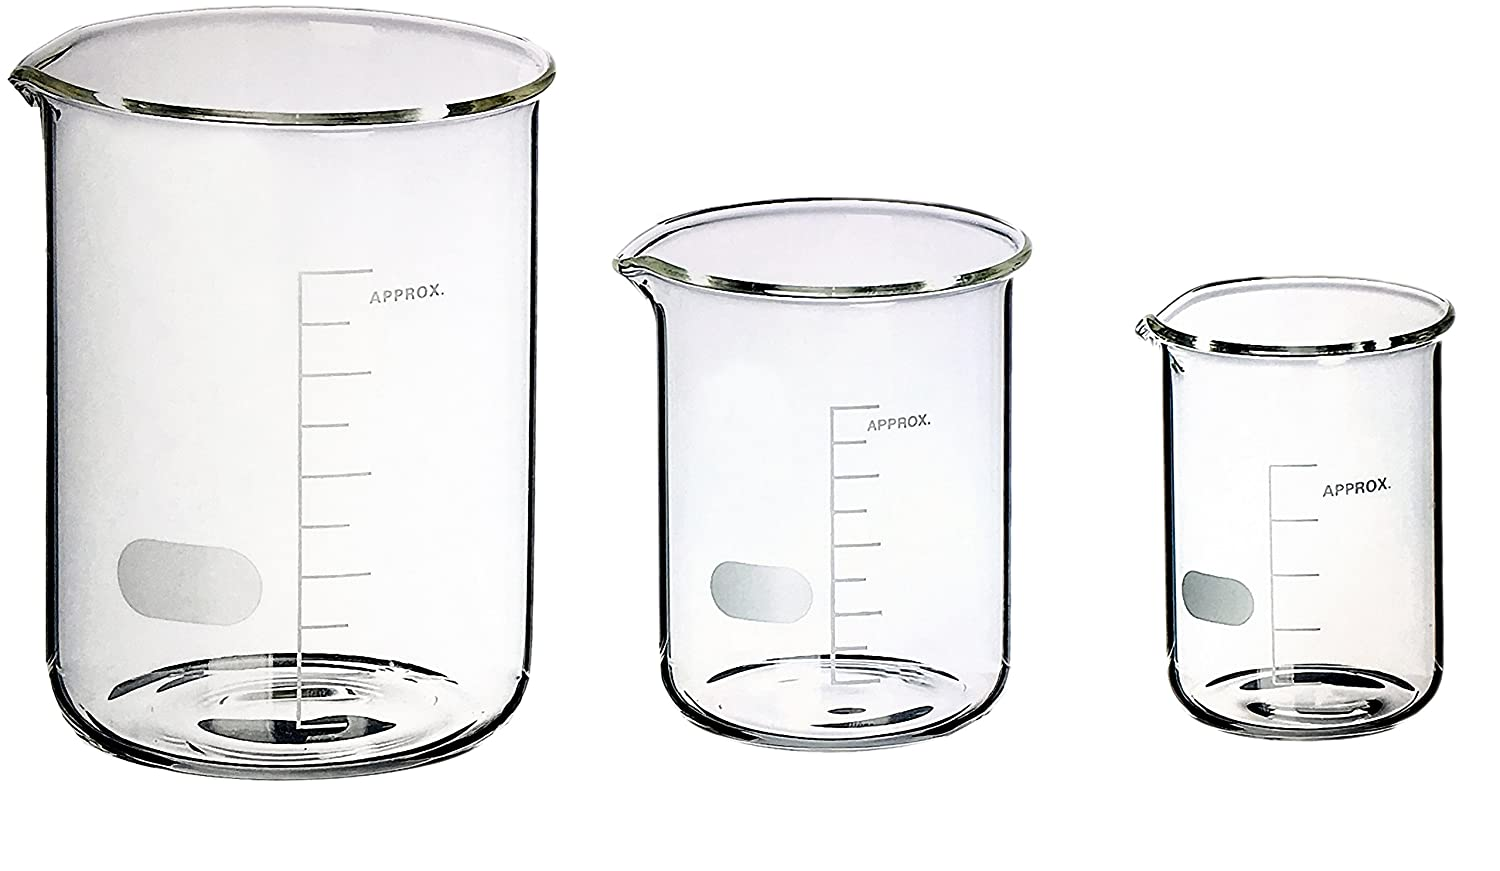 Sciencent Borosilicate Glass Low Form Glass Beaker, 50/100/250 (Pack of 3) The Punjab Scientific Industries